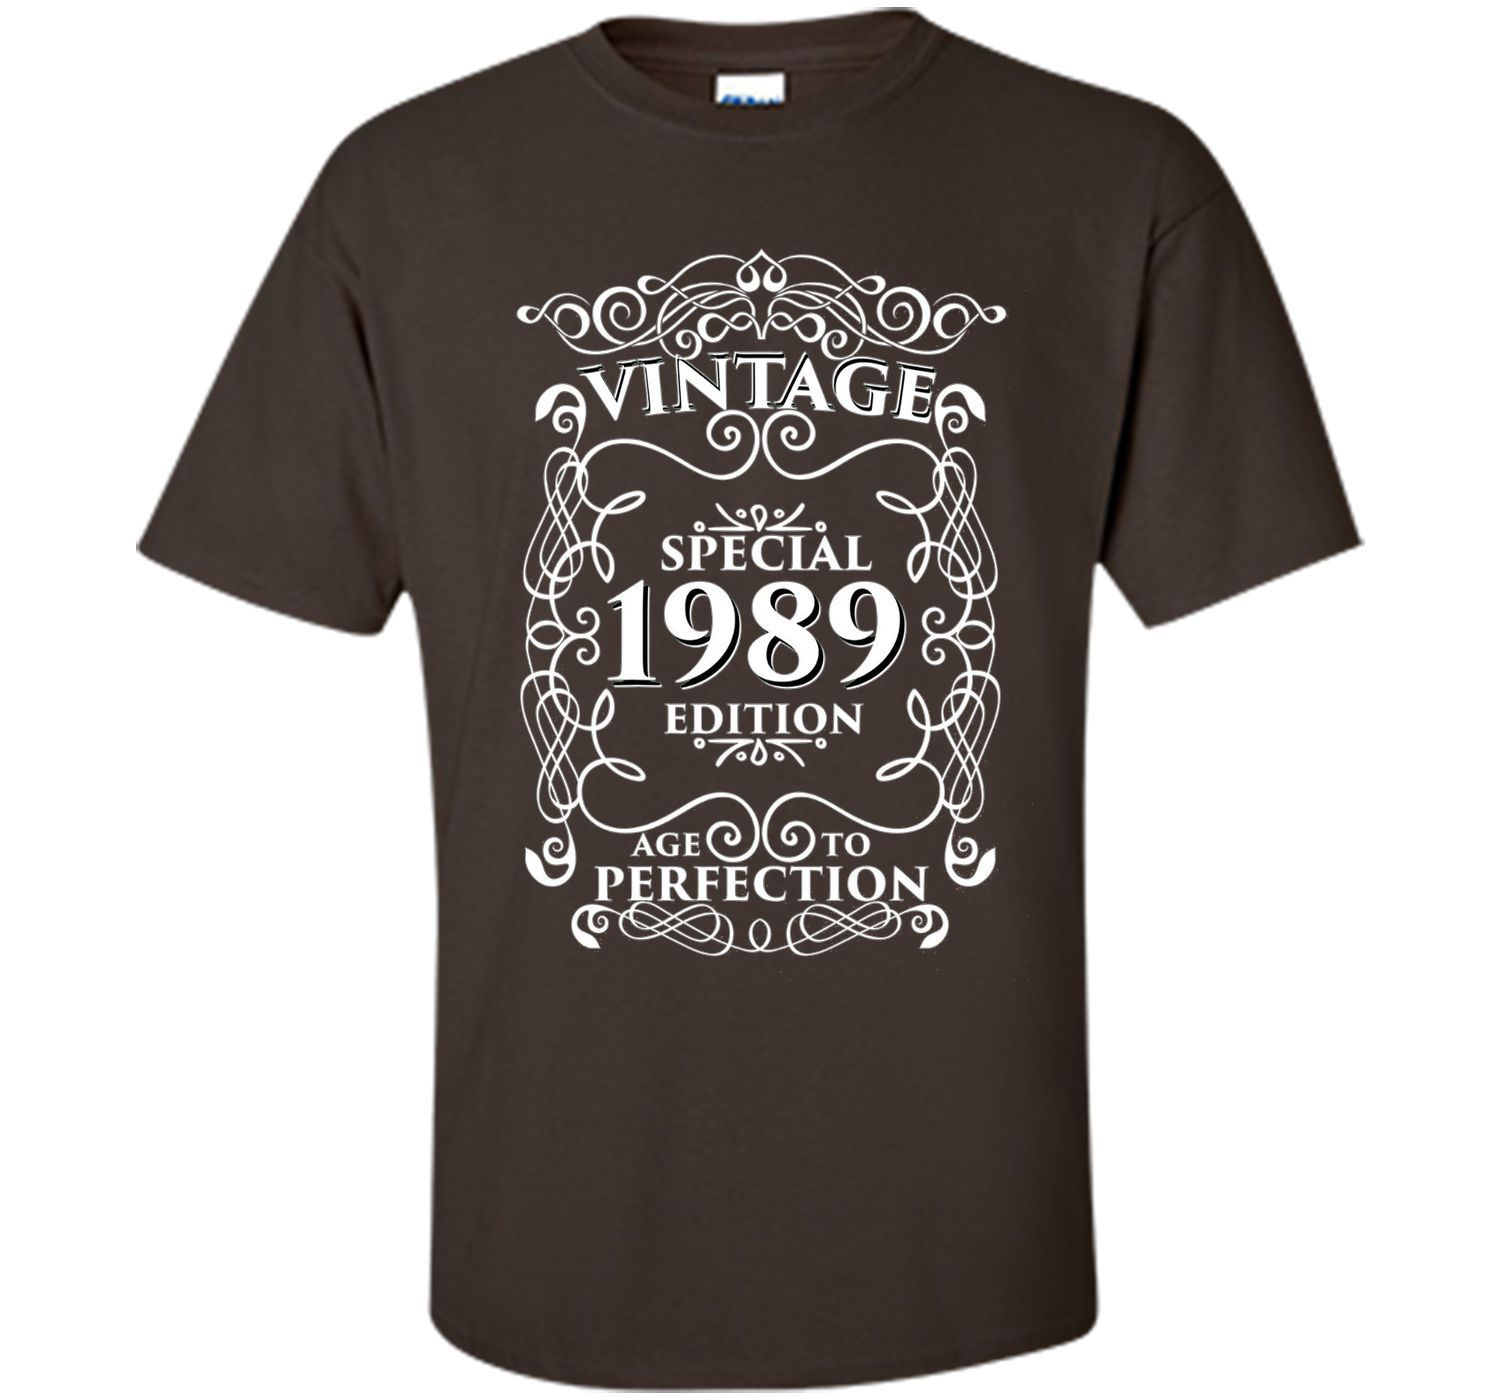 Vintage 1989 T-shirt Perfect Birthday Gift For Man/Women